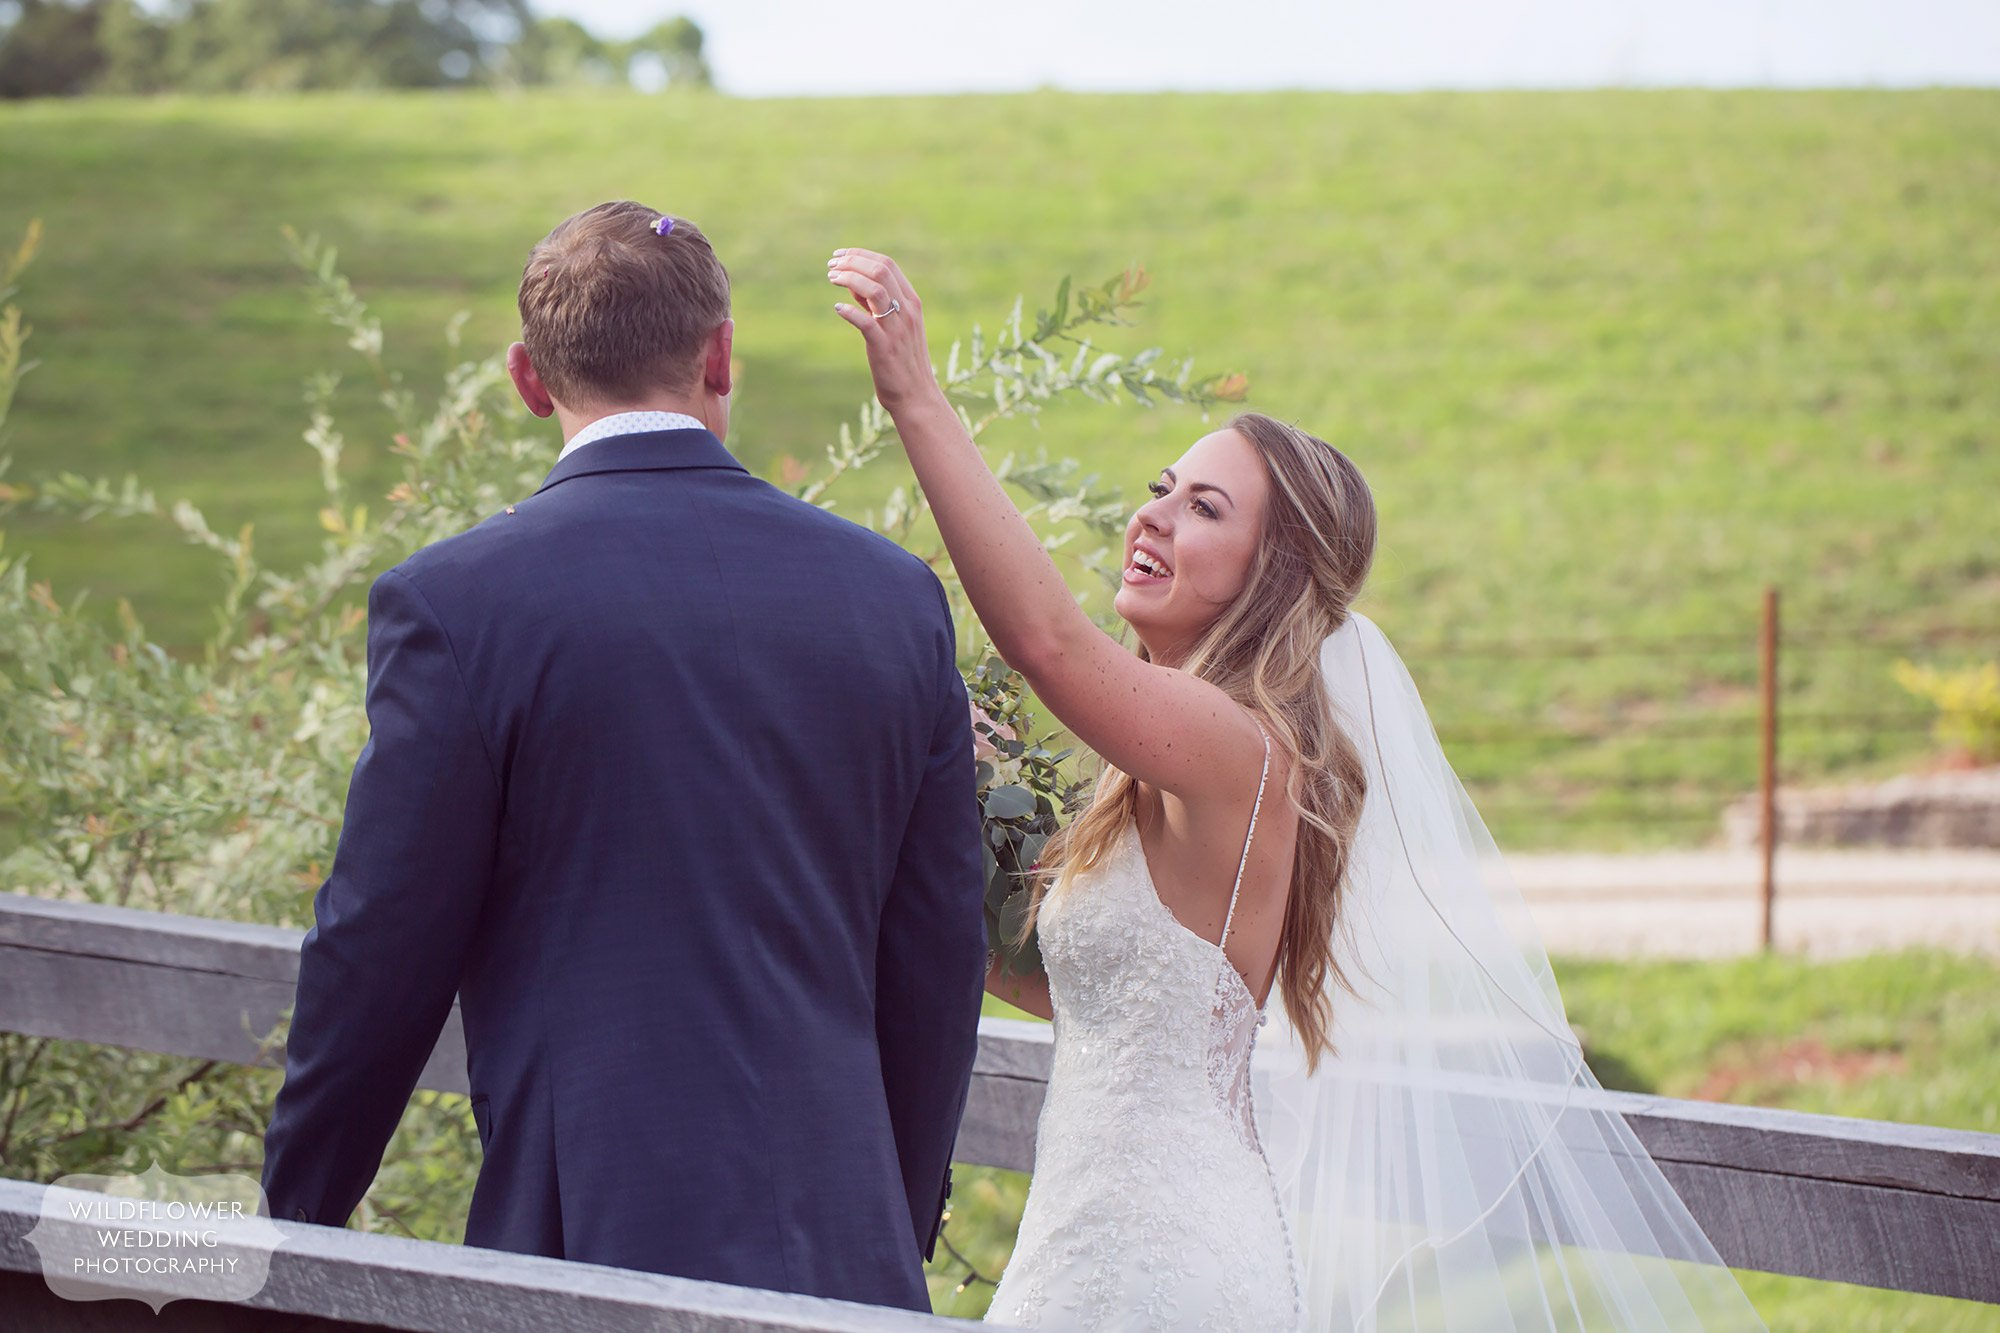 Candid wedding photography of the bride picking wildflowers out of the groom's hair after their outdoor ceremony in the country of southern MO.